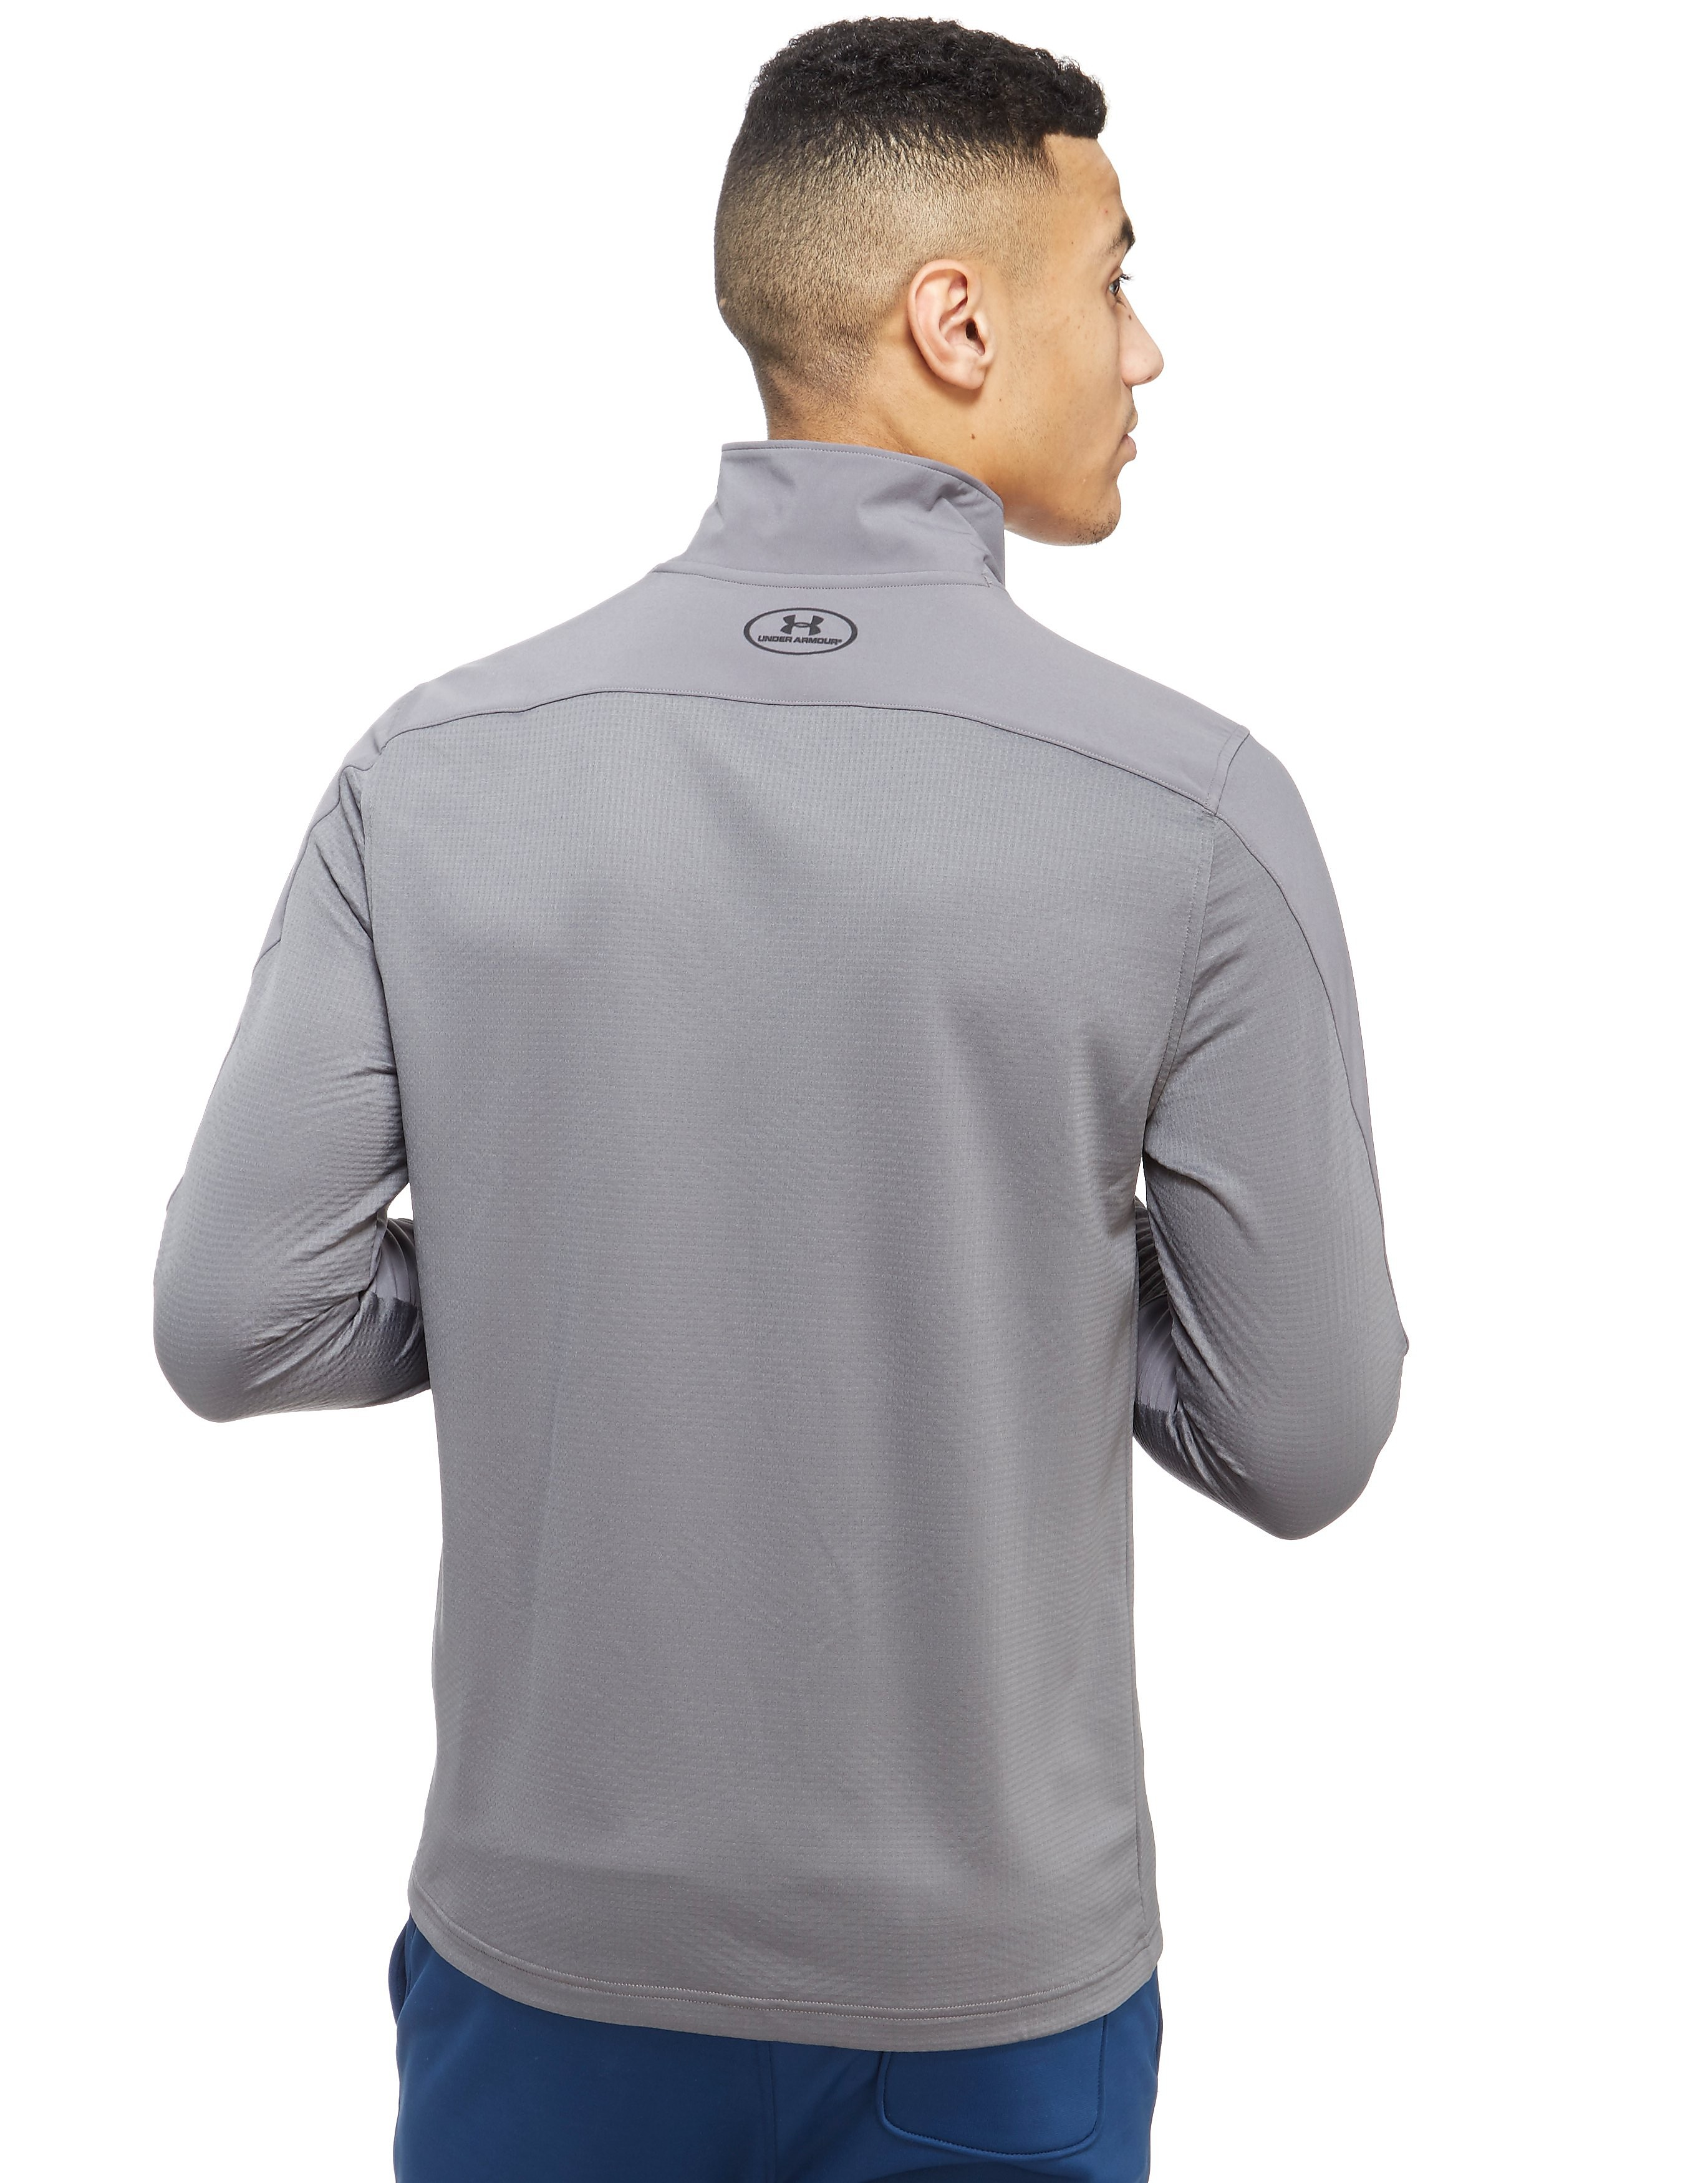 Under Armour Cold Gear Infrared Raid 1/4 Zip Top